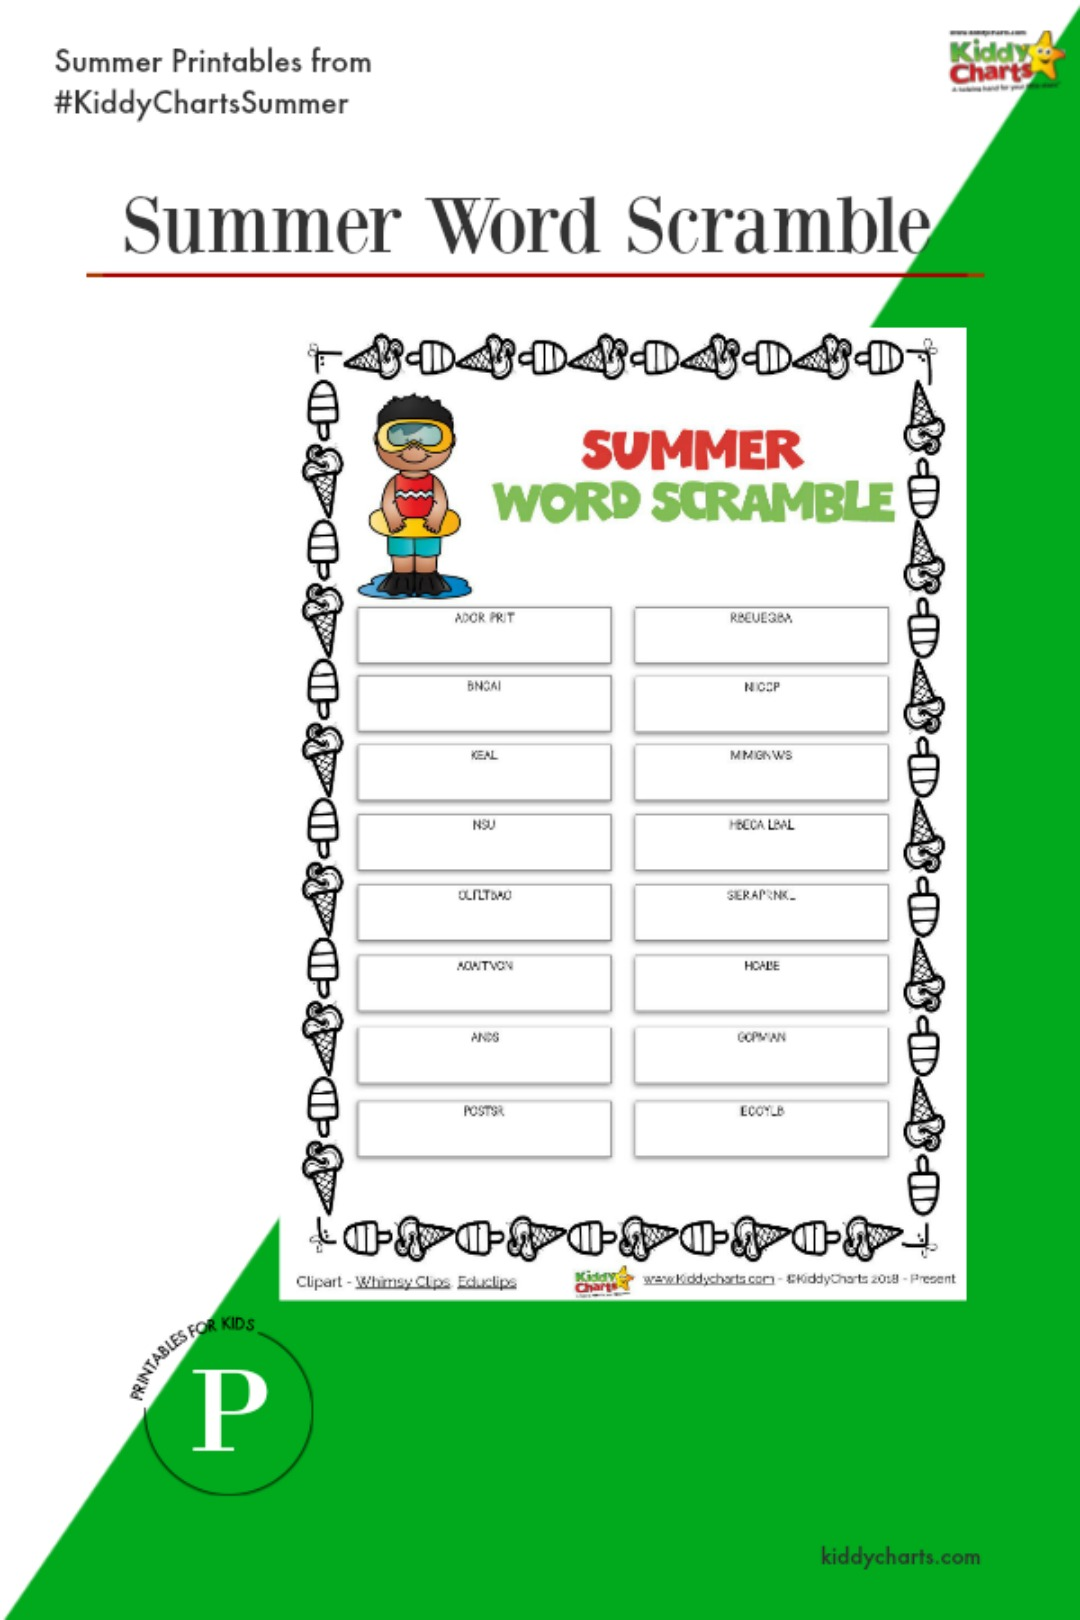 It is a summer word scramble for everyone today - why not check this out alongside all the other summer activities we have on the site for the kids? #summer #kids #activities #printables